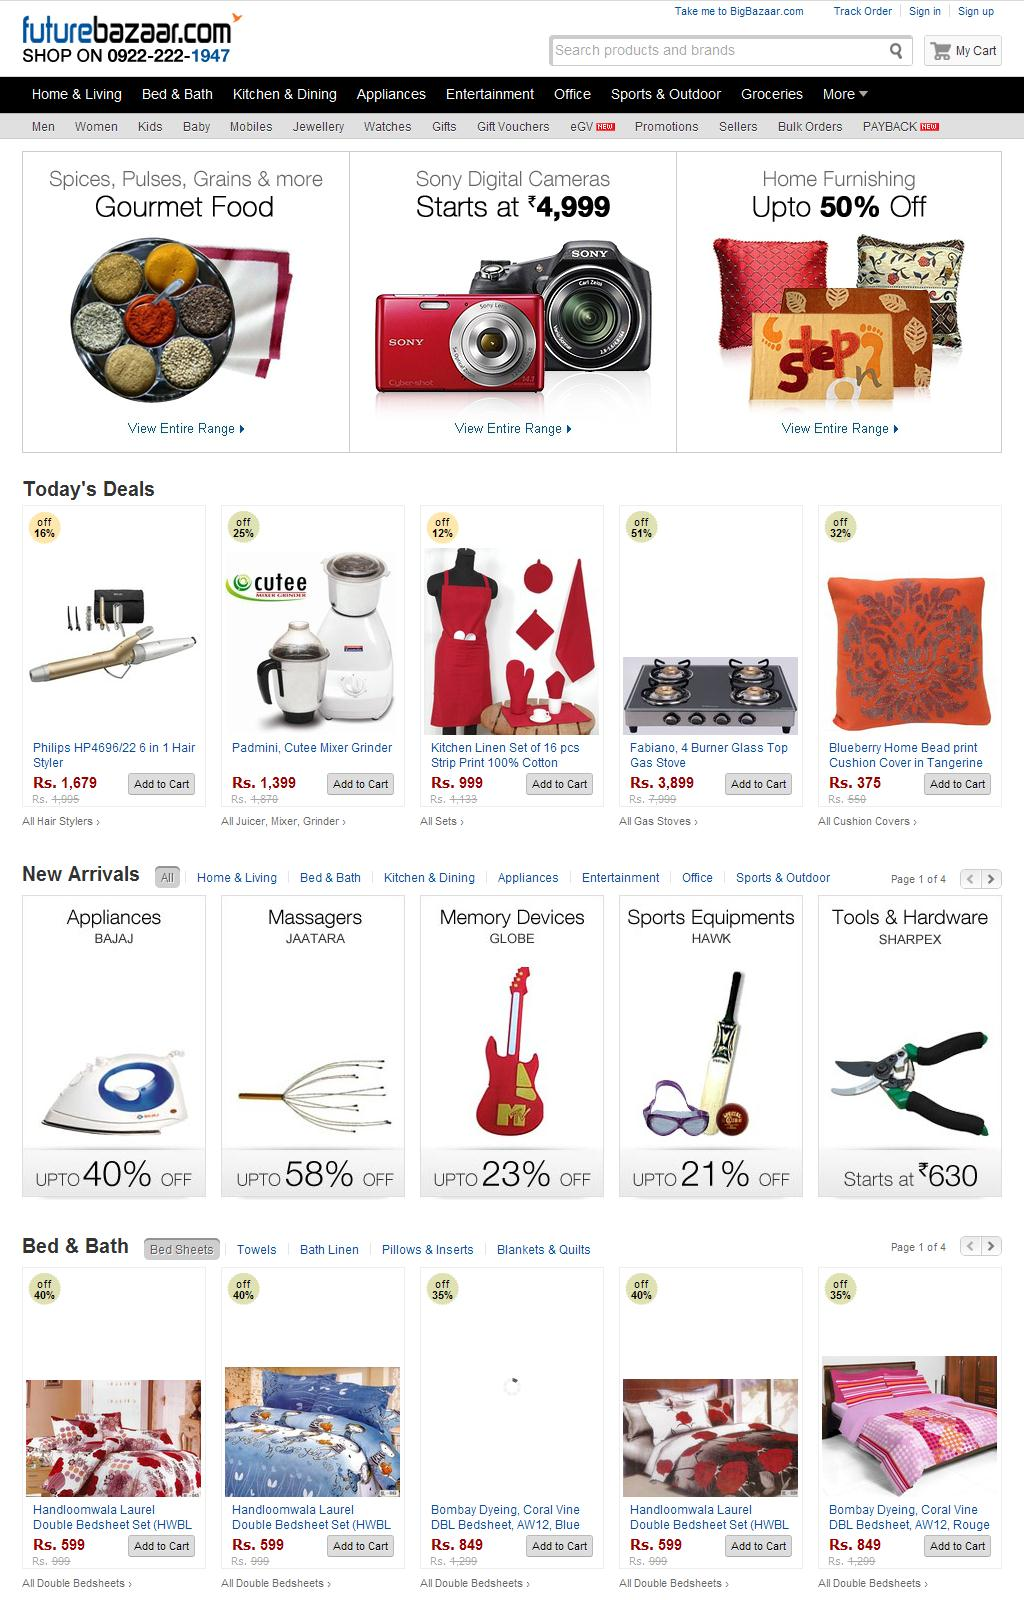 FutureBazaar.com - Online Shopping India   Buy from Home & Living, Electronics, Kitchen Items, Kitchen and Home Appliances, Gift Vouchers